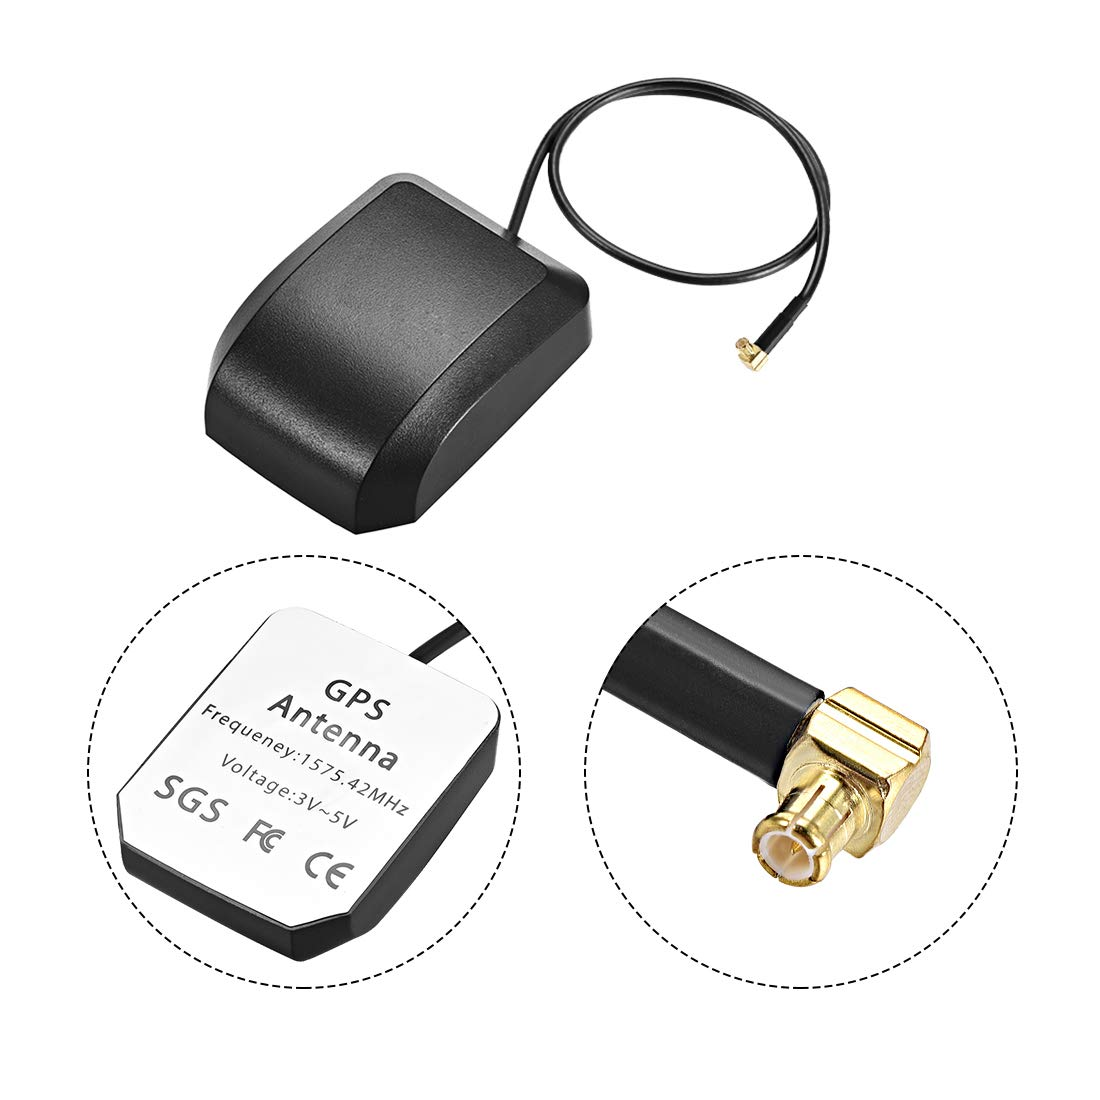 uxcell GPS Active Antenna MCX Male Plug 90-Degree 34dB Aerial Connector Cable with Magnetic Mount 0.5 Meters Wire L